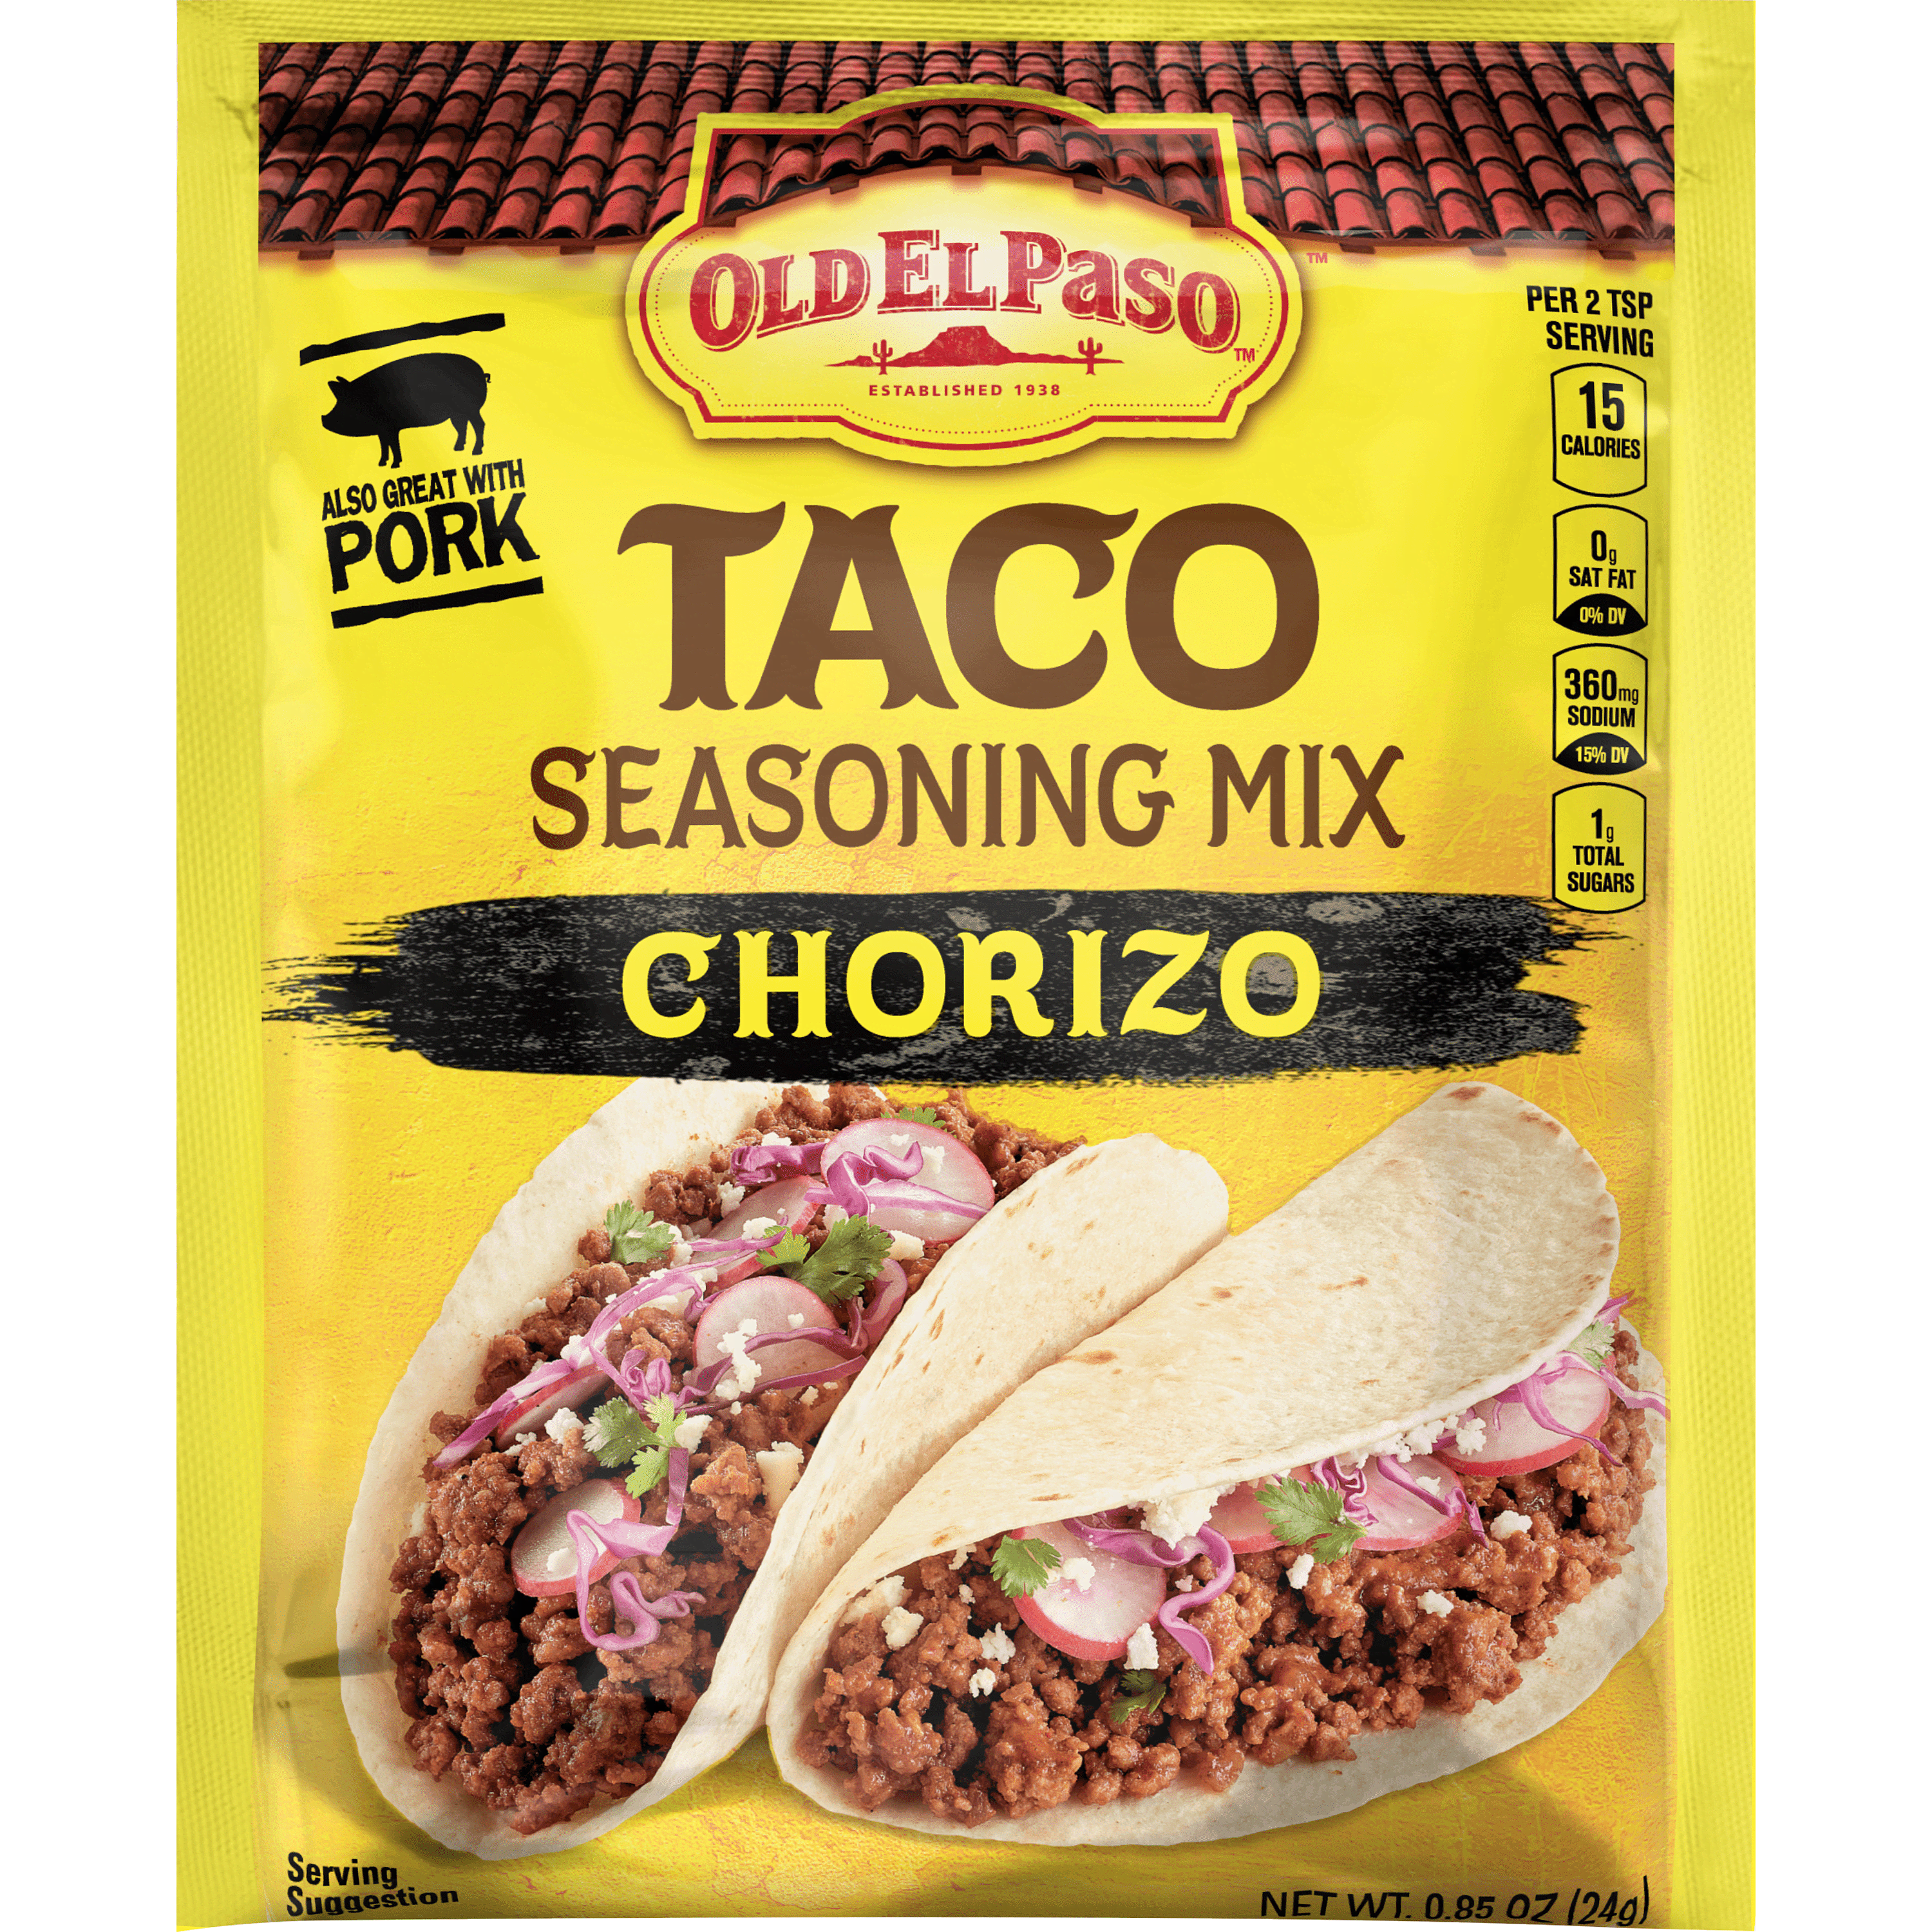 Chorizo Taco Seasoning Mix Mexican Seasoning Old El Paso